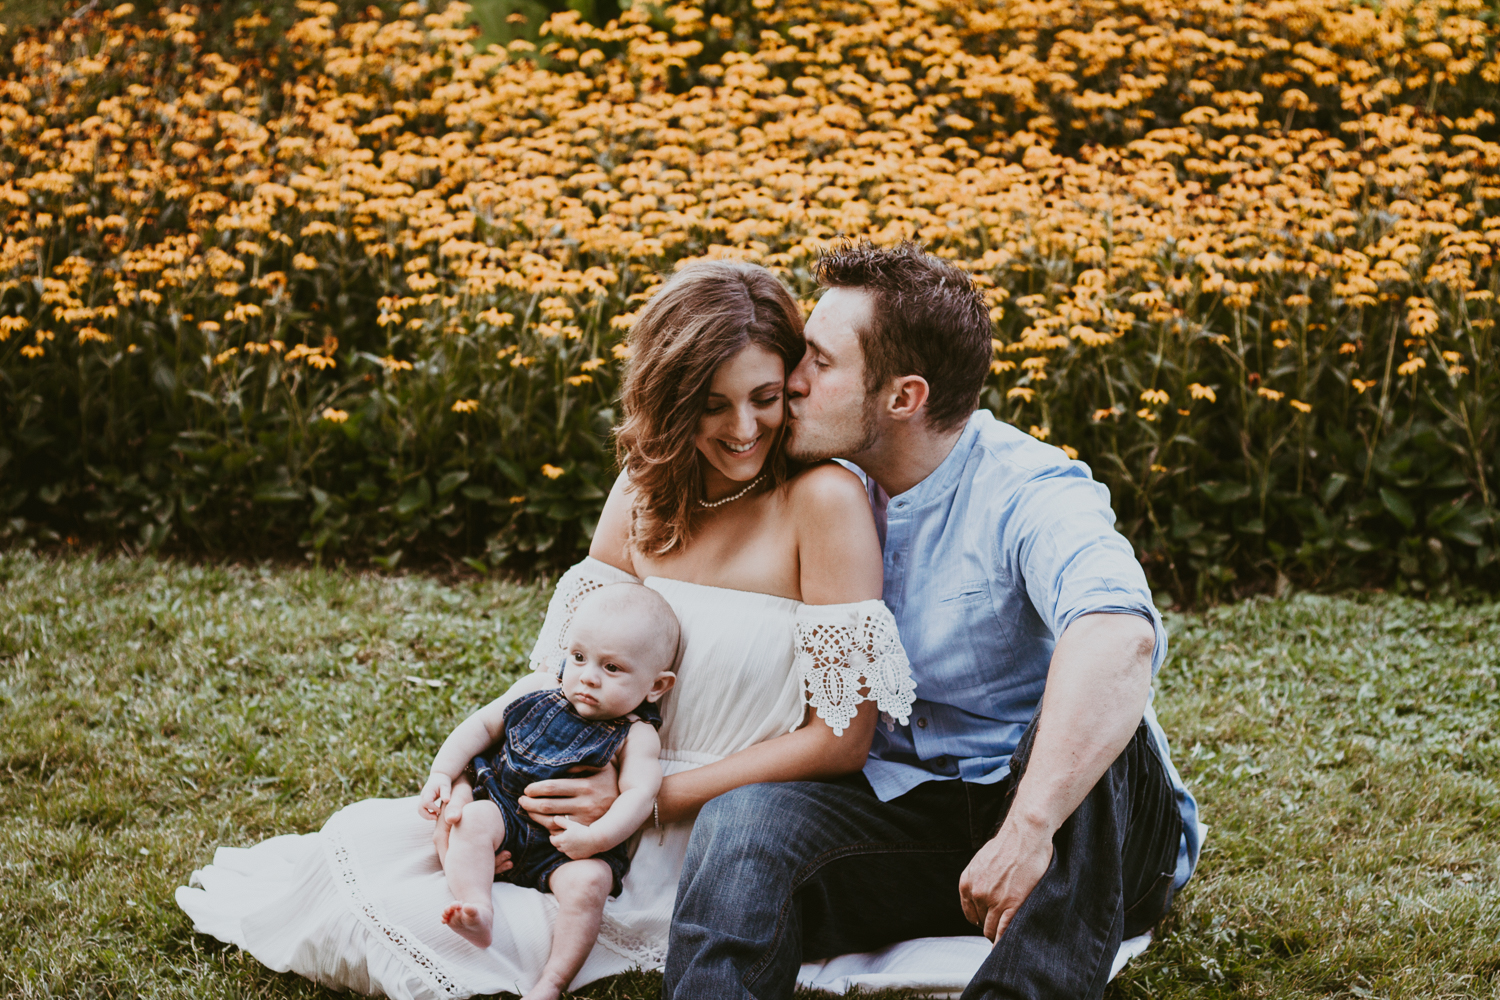 Newborn Garden Family Portrait Session | Kayli LaFon Photography | Greensboro Winston-Salem, North Carolina Photographer